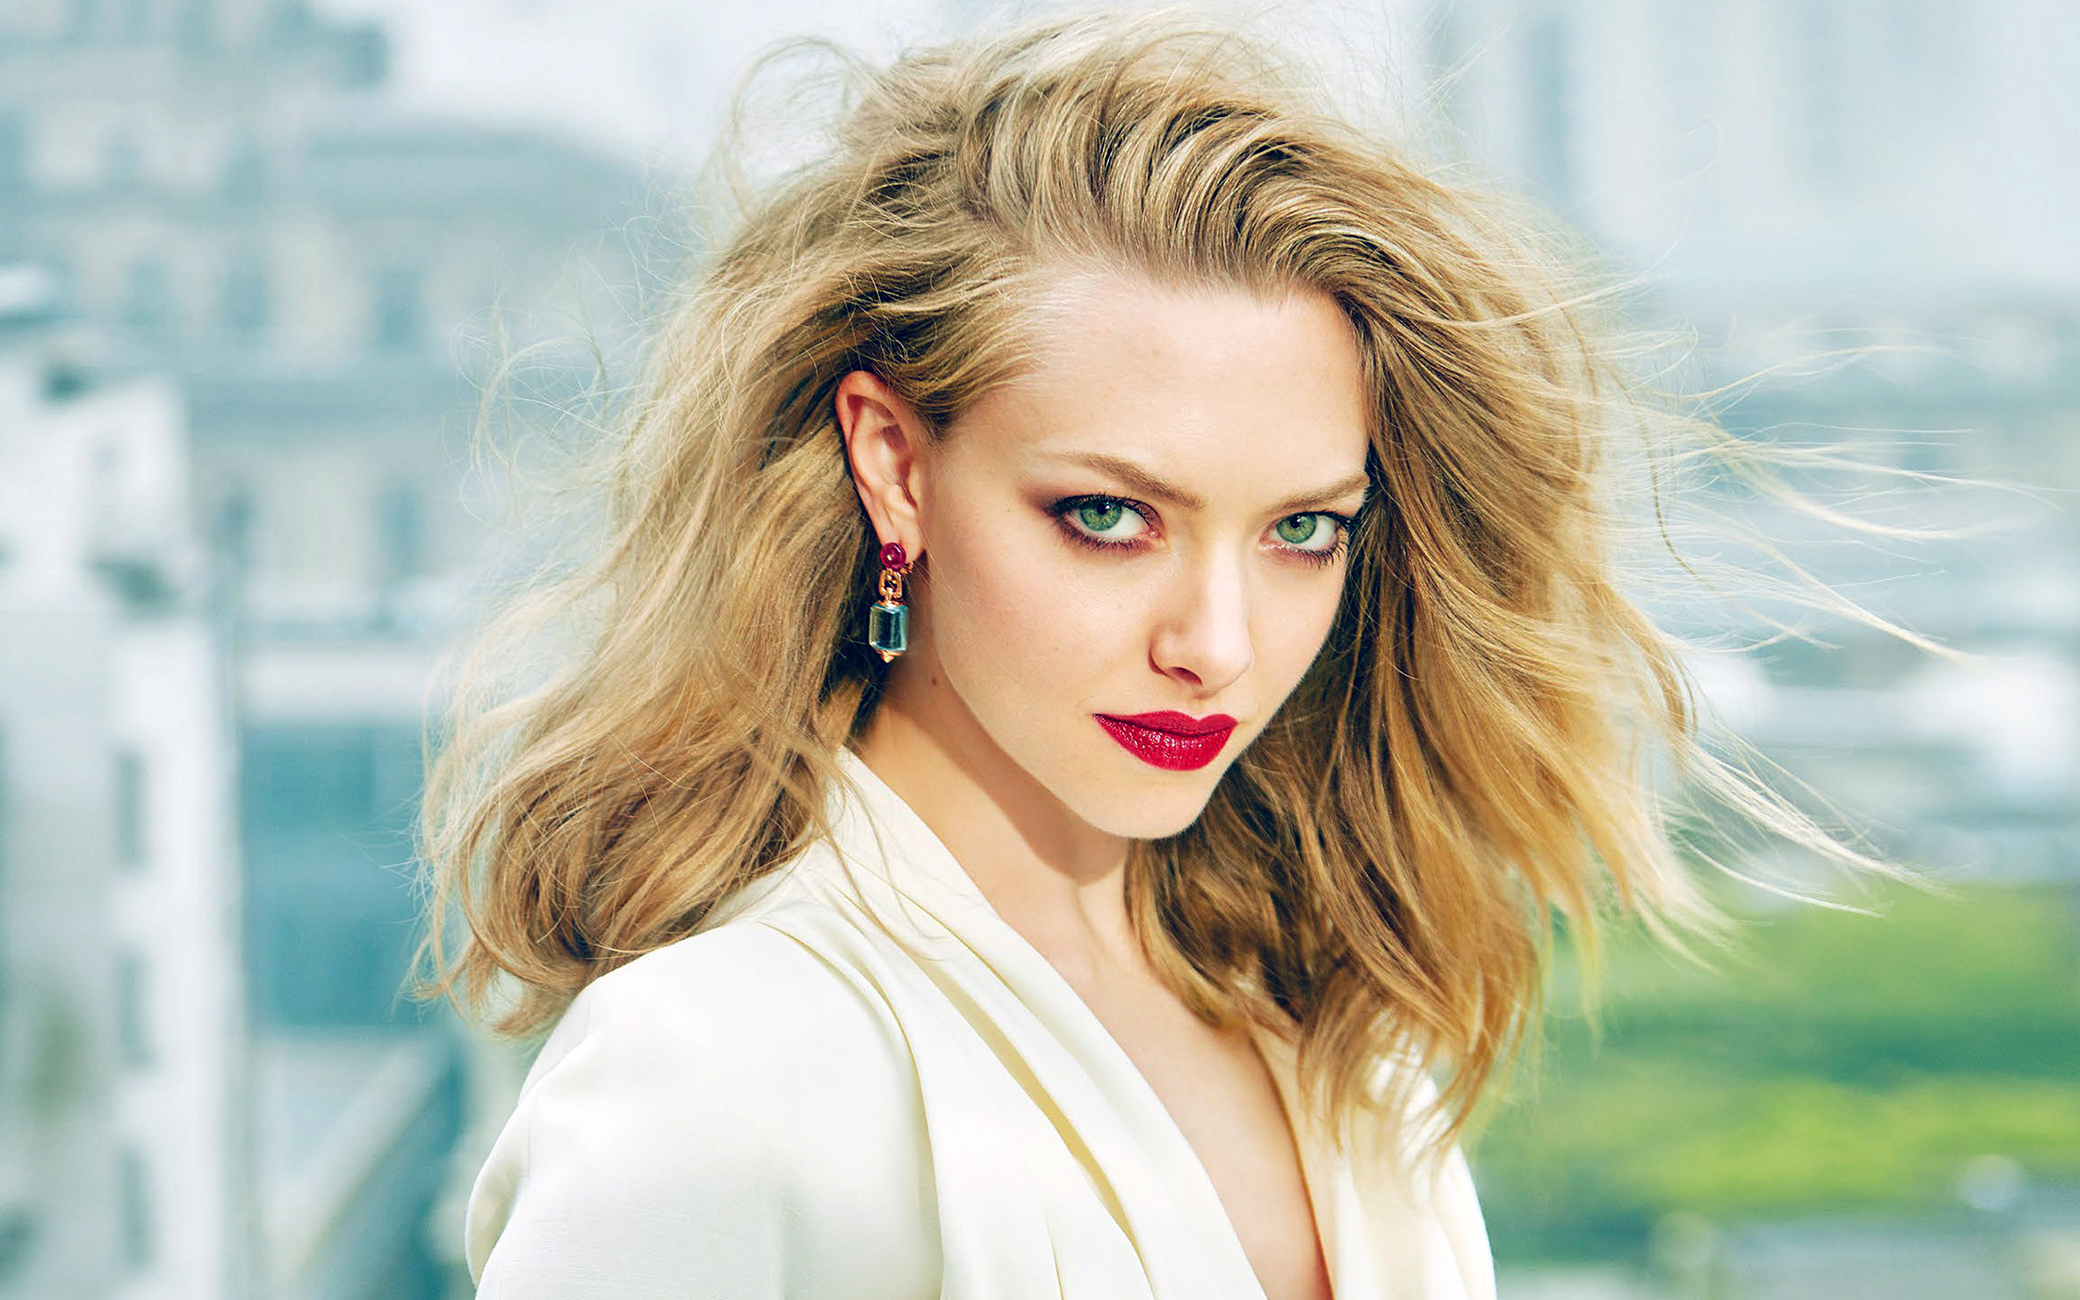 Amanda Seyfried Hot Video sexiest actors of gringo - provokr